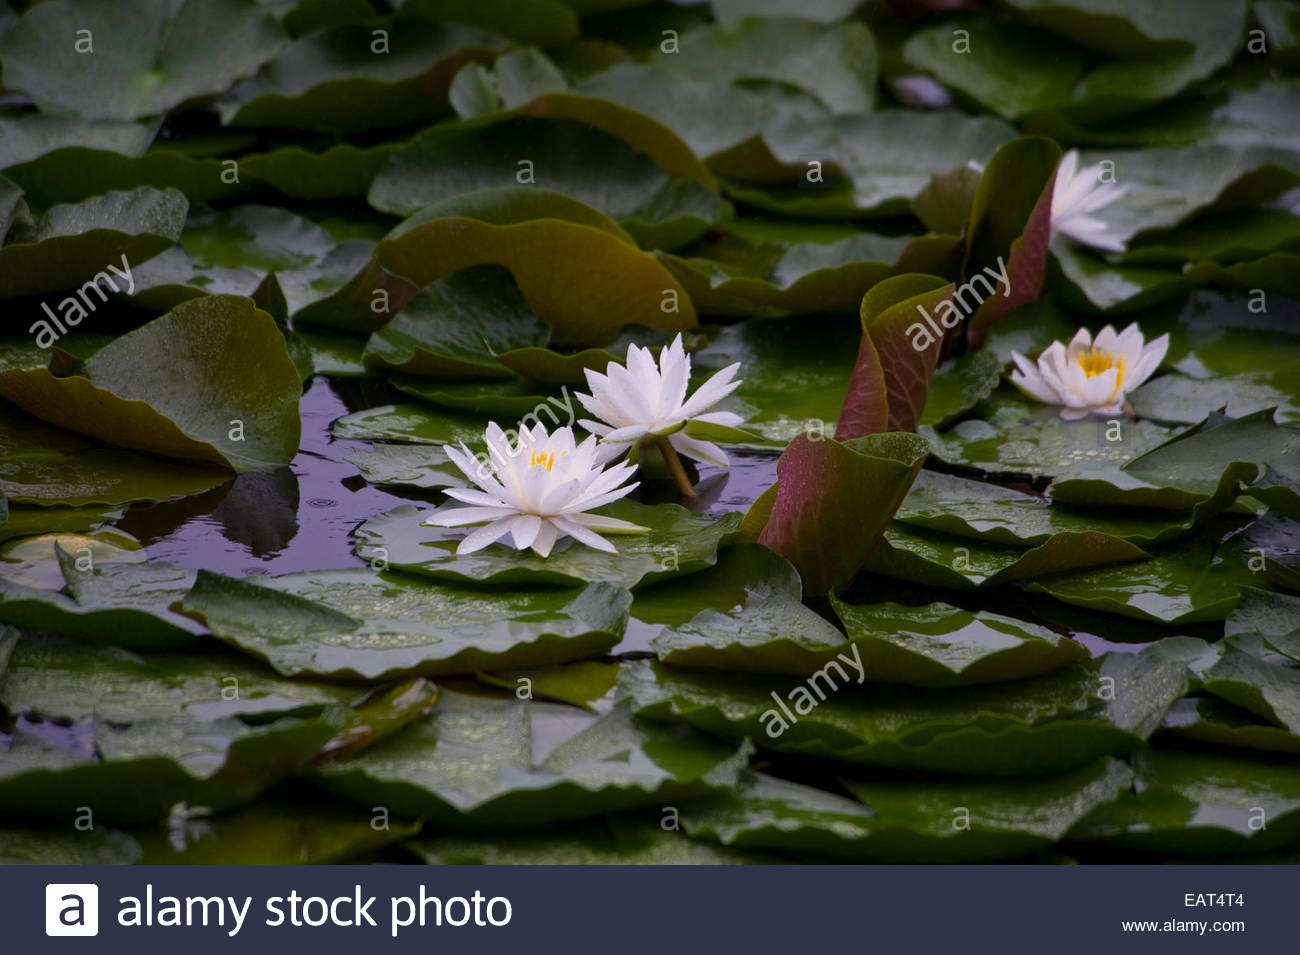 Water lilies soak up the summer rain. - Stock Image